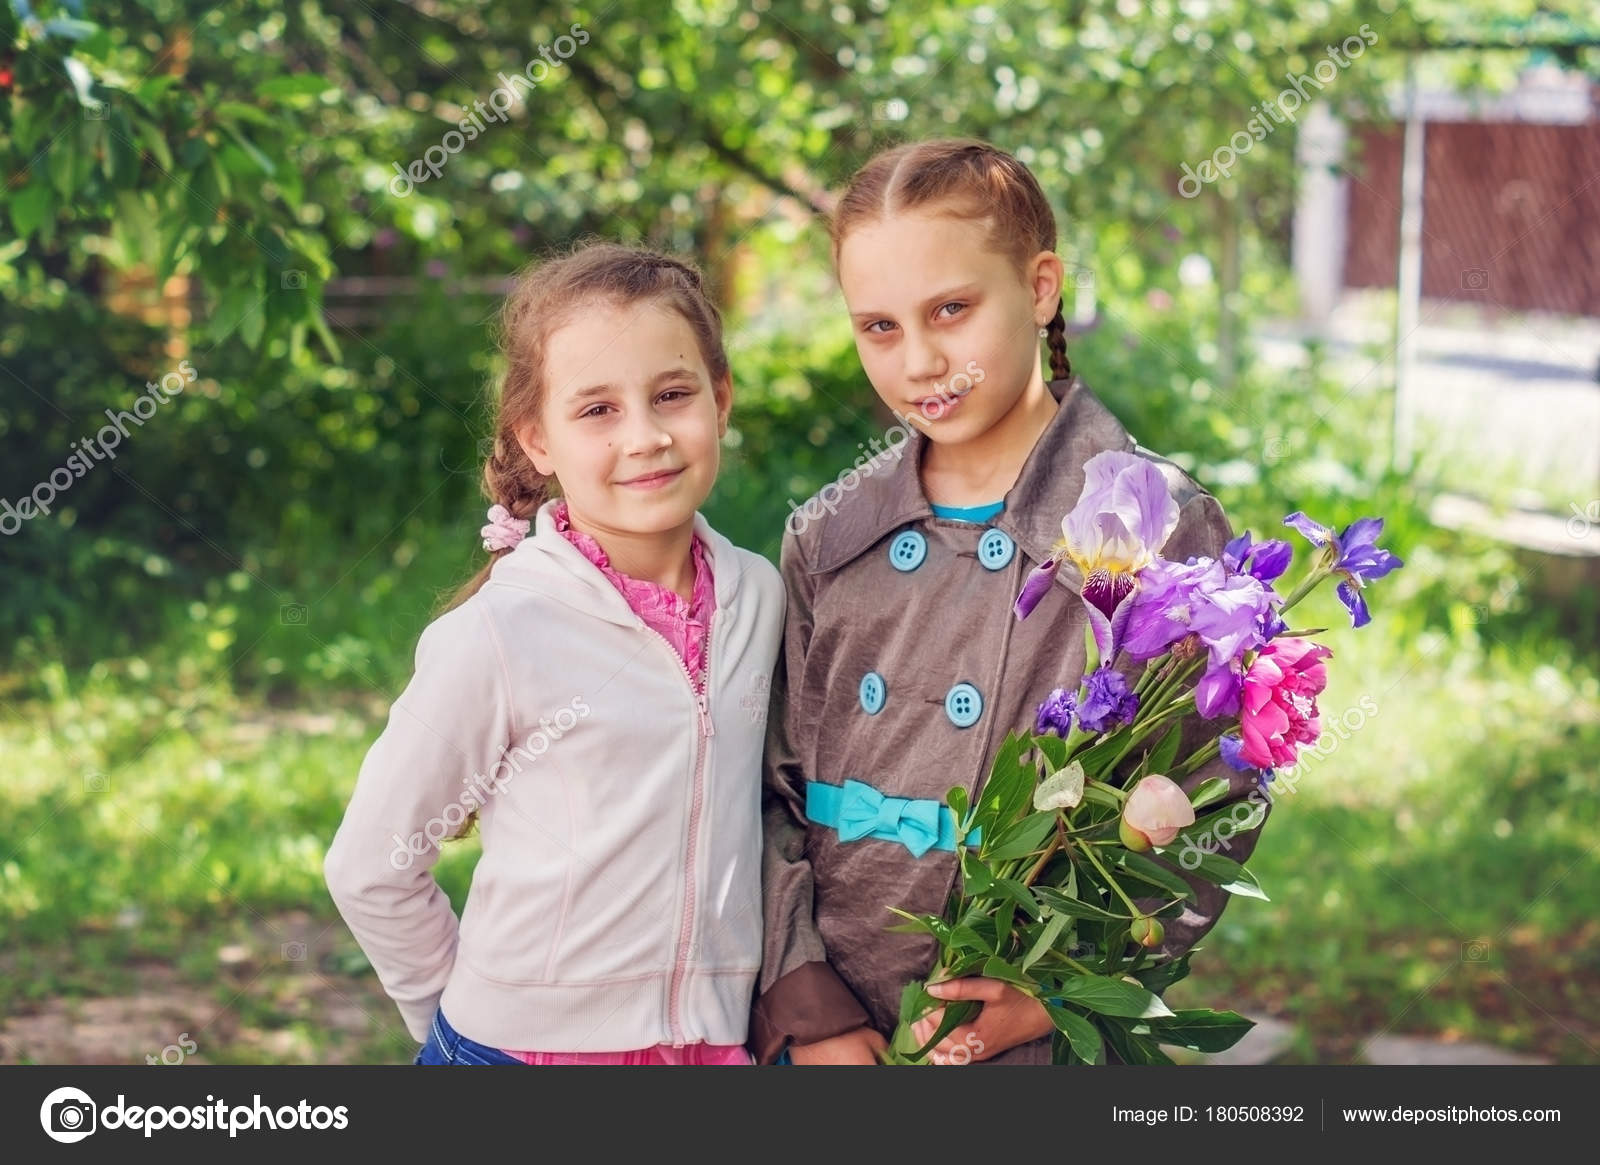 Two Children Girls Sisters Bouquet Spring Flowers Background Spring